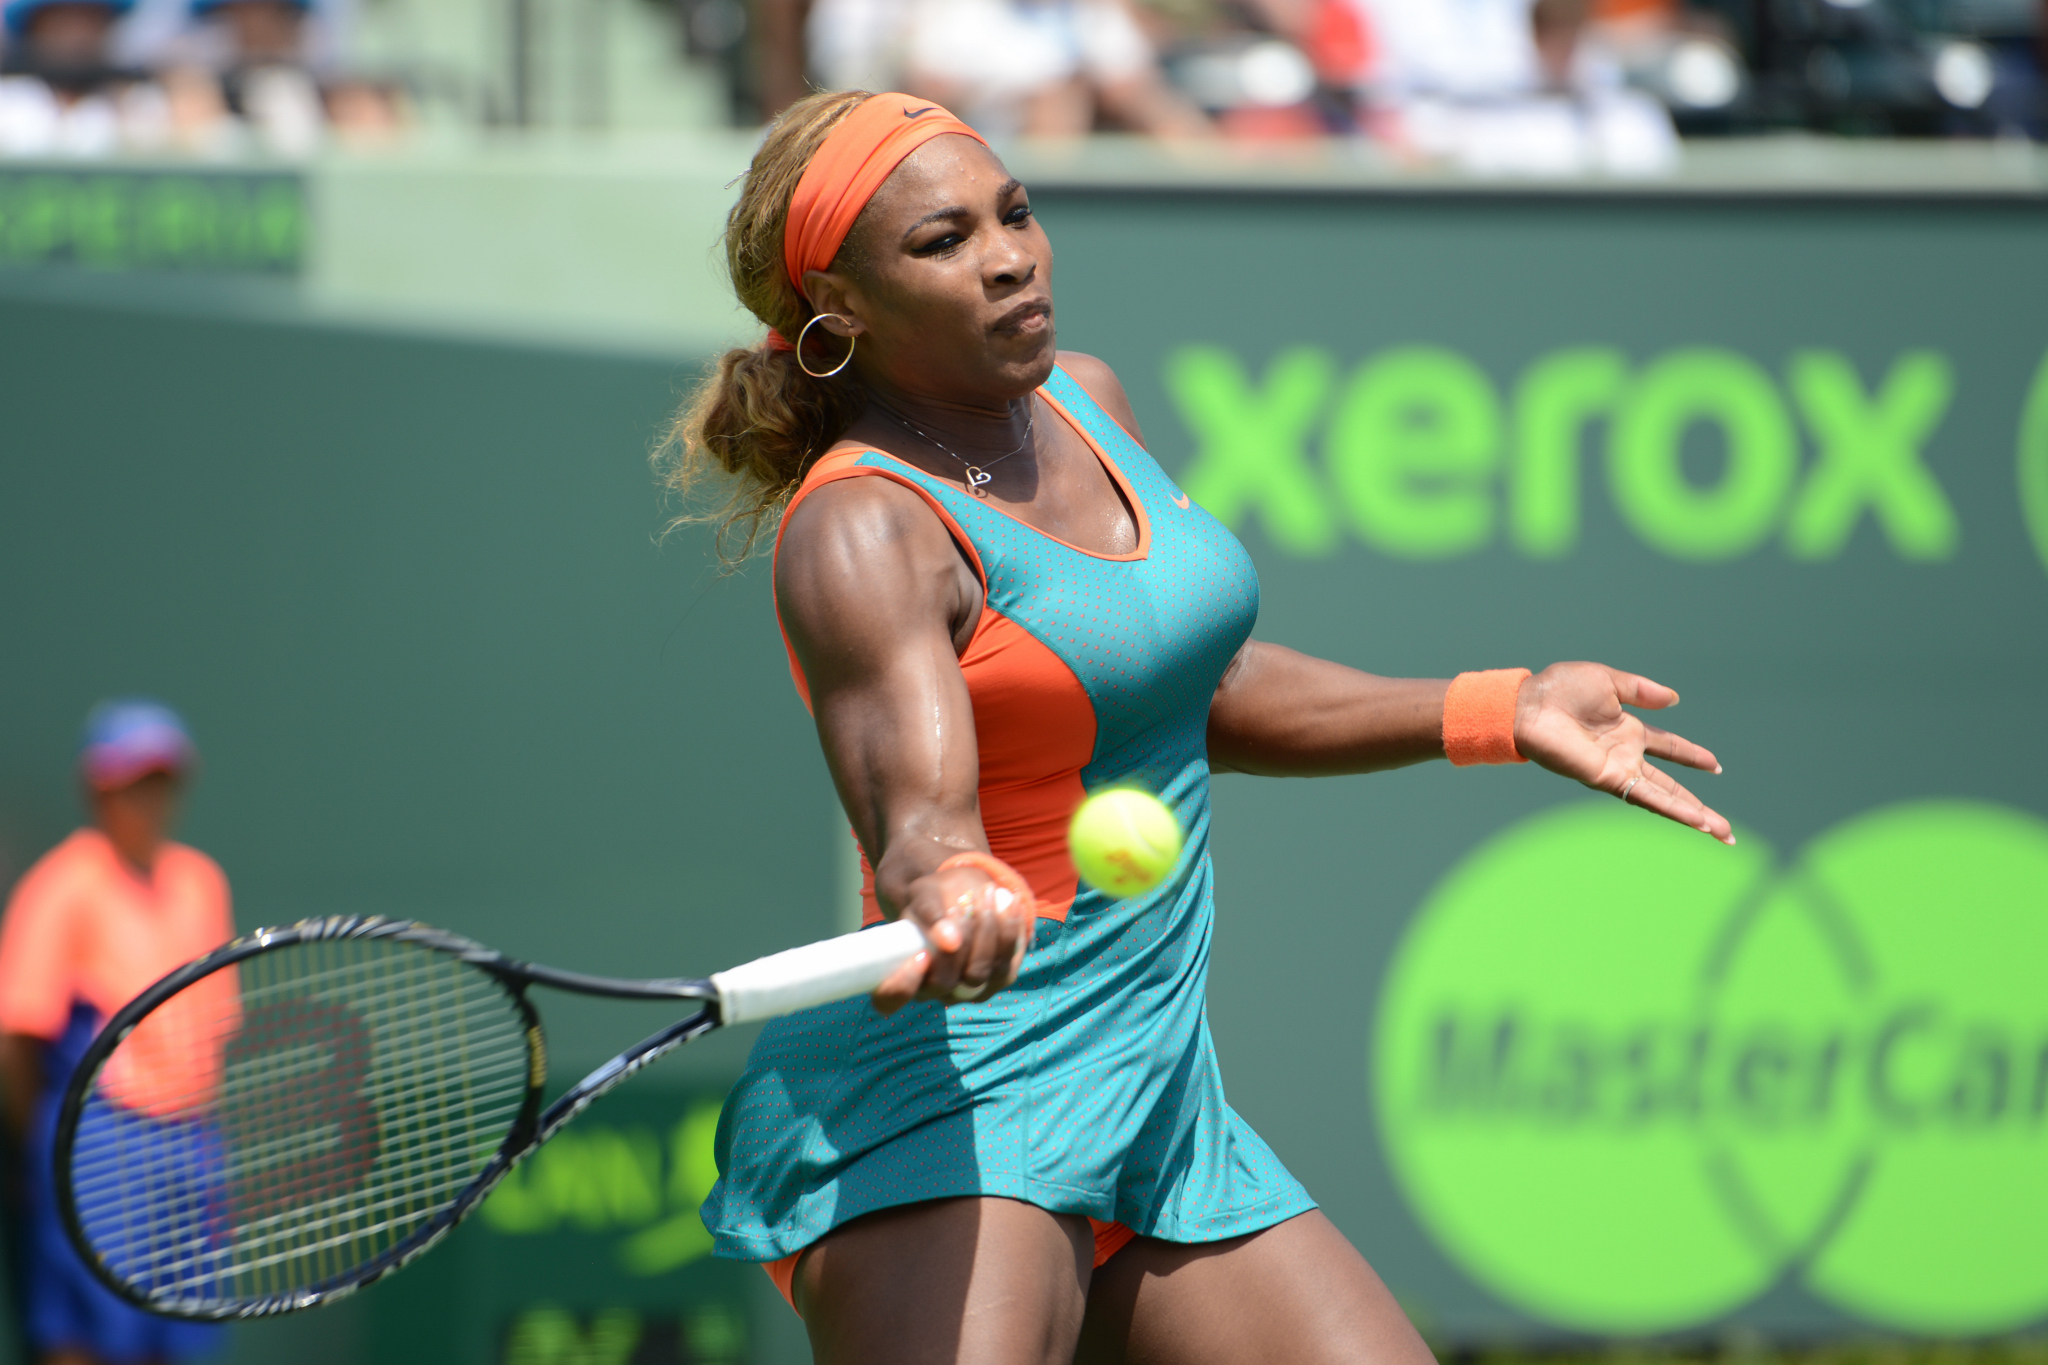 Serena and Li Face Off in Miami - Women's Final Preview